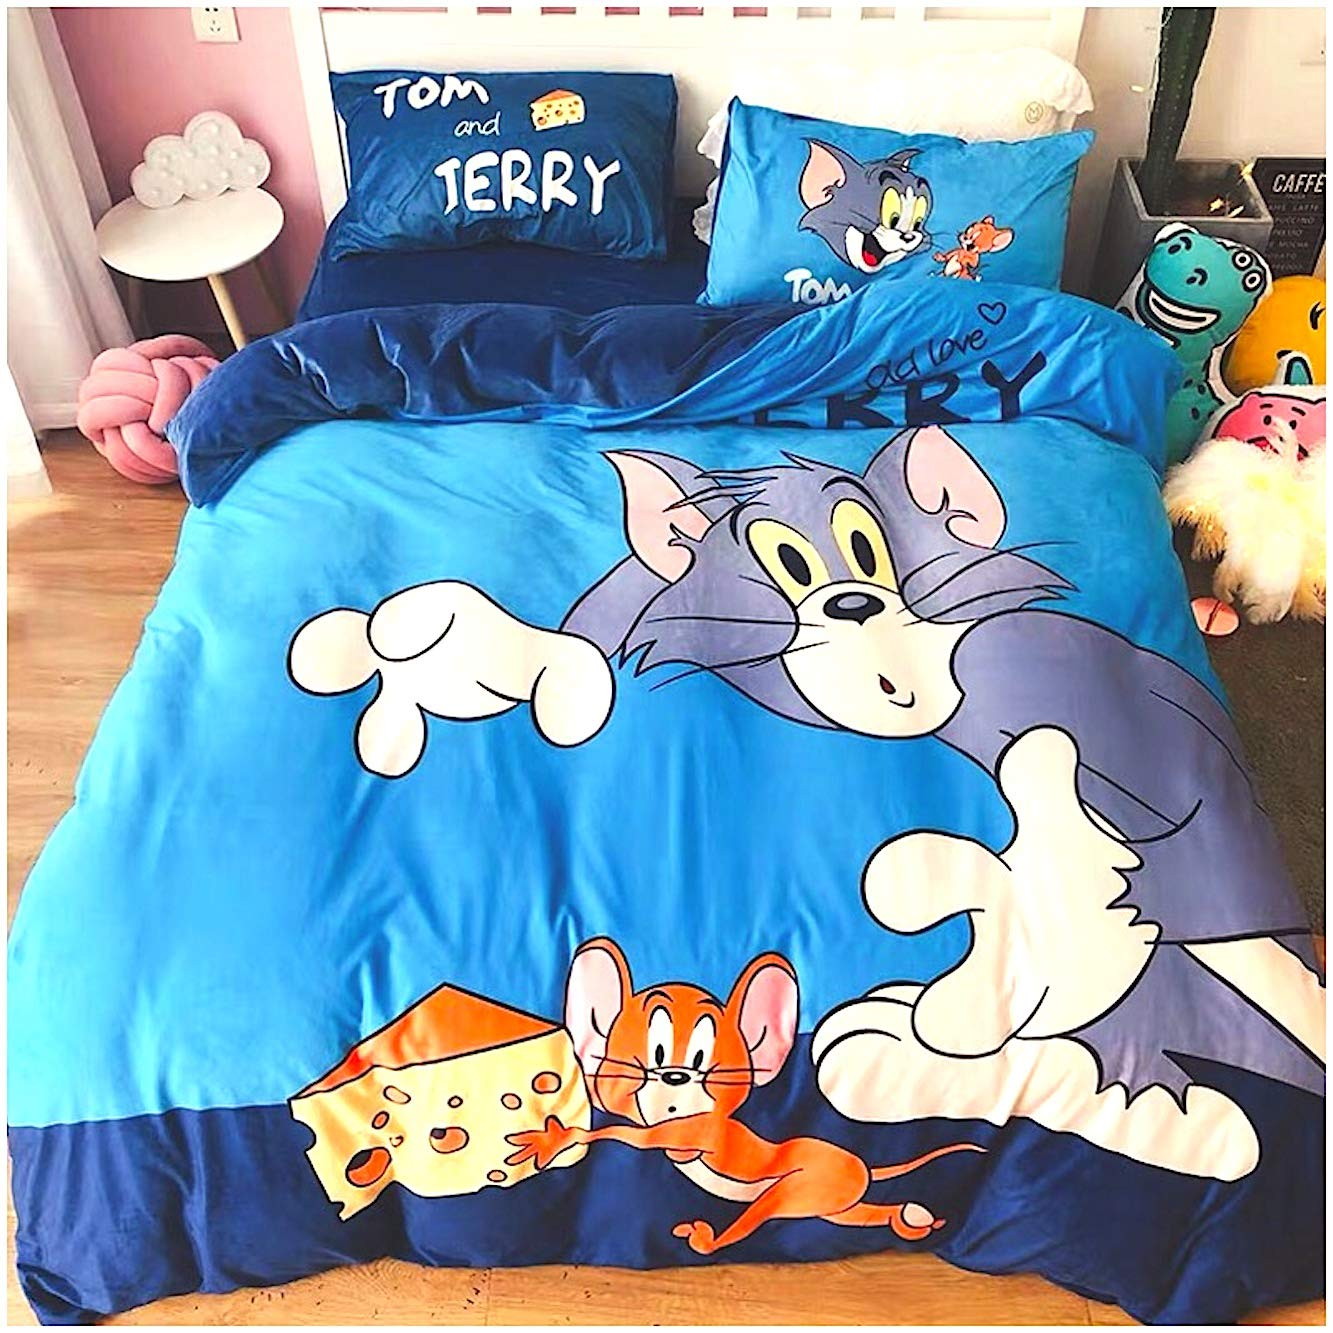 Peachy Baby Featuring Tom and Jerry Bedding Sheet Set Single Queen King Twin Full Size Fleece Velvet Flannel Cute Cartoon 3/4 Pieces Pillowcase Duvet Cover Flat Sheet (Queen/Double/Full Size)